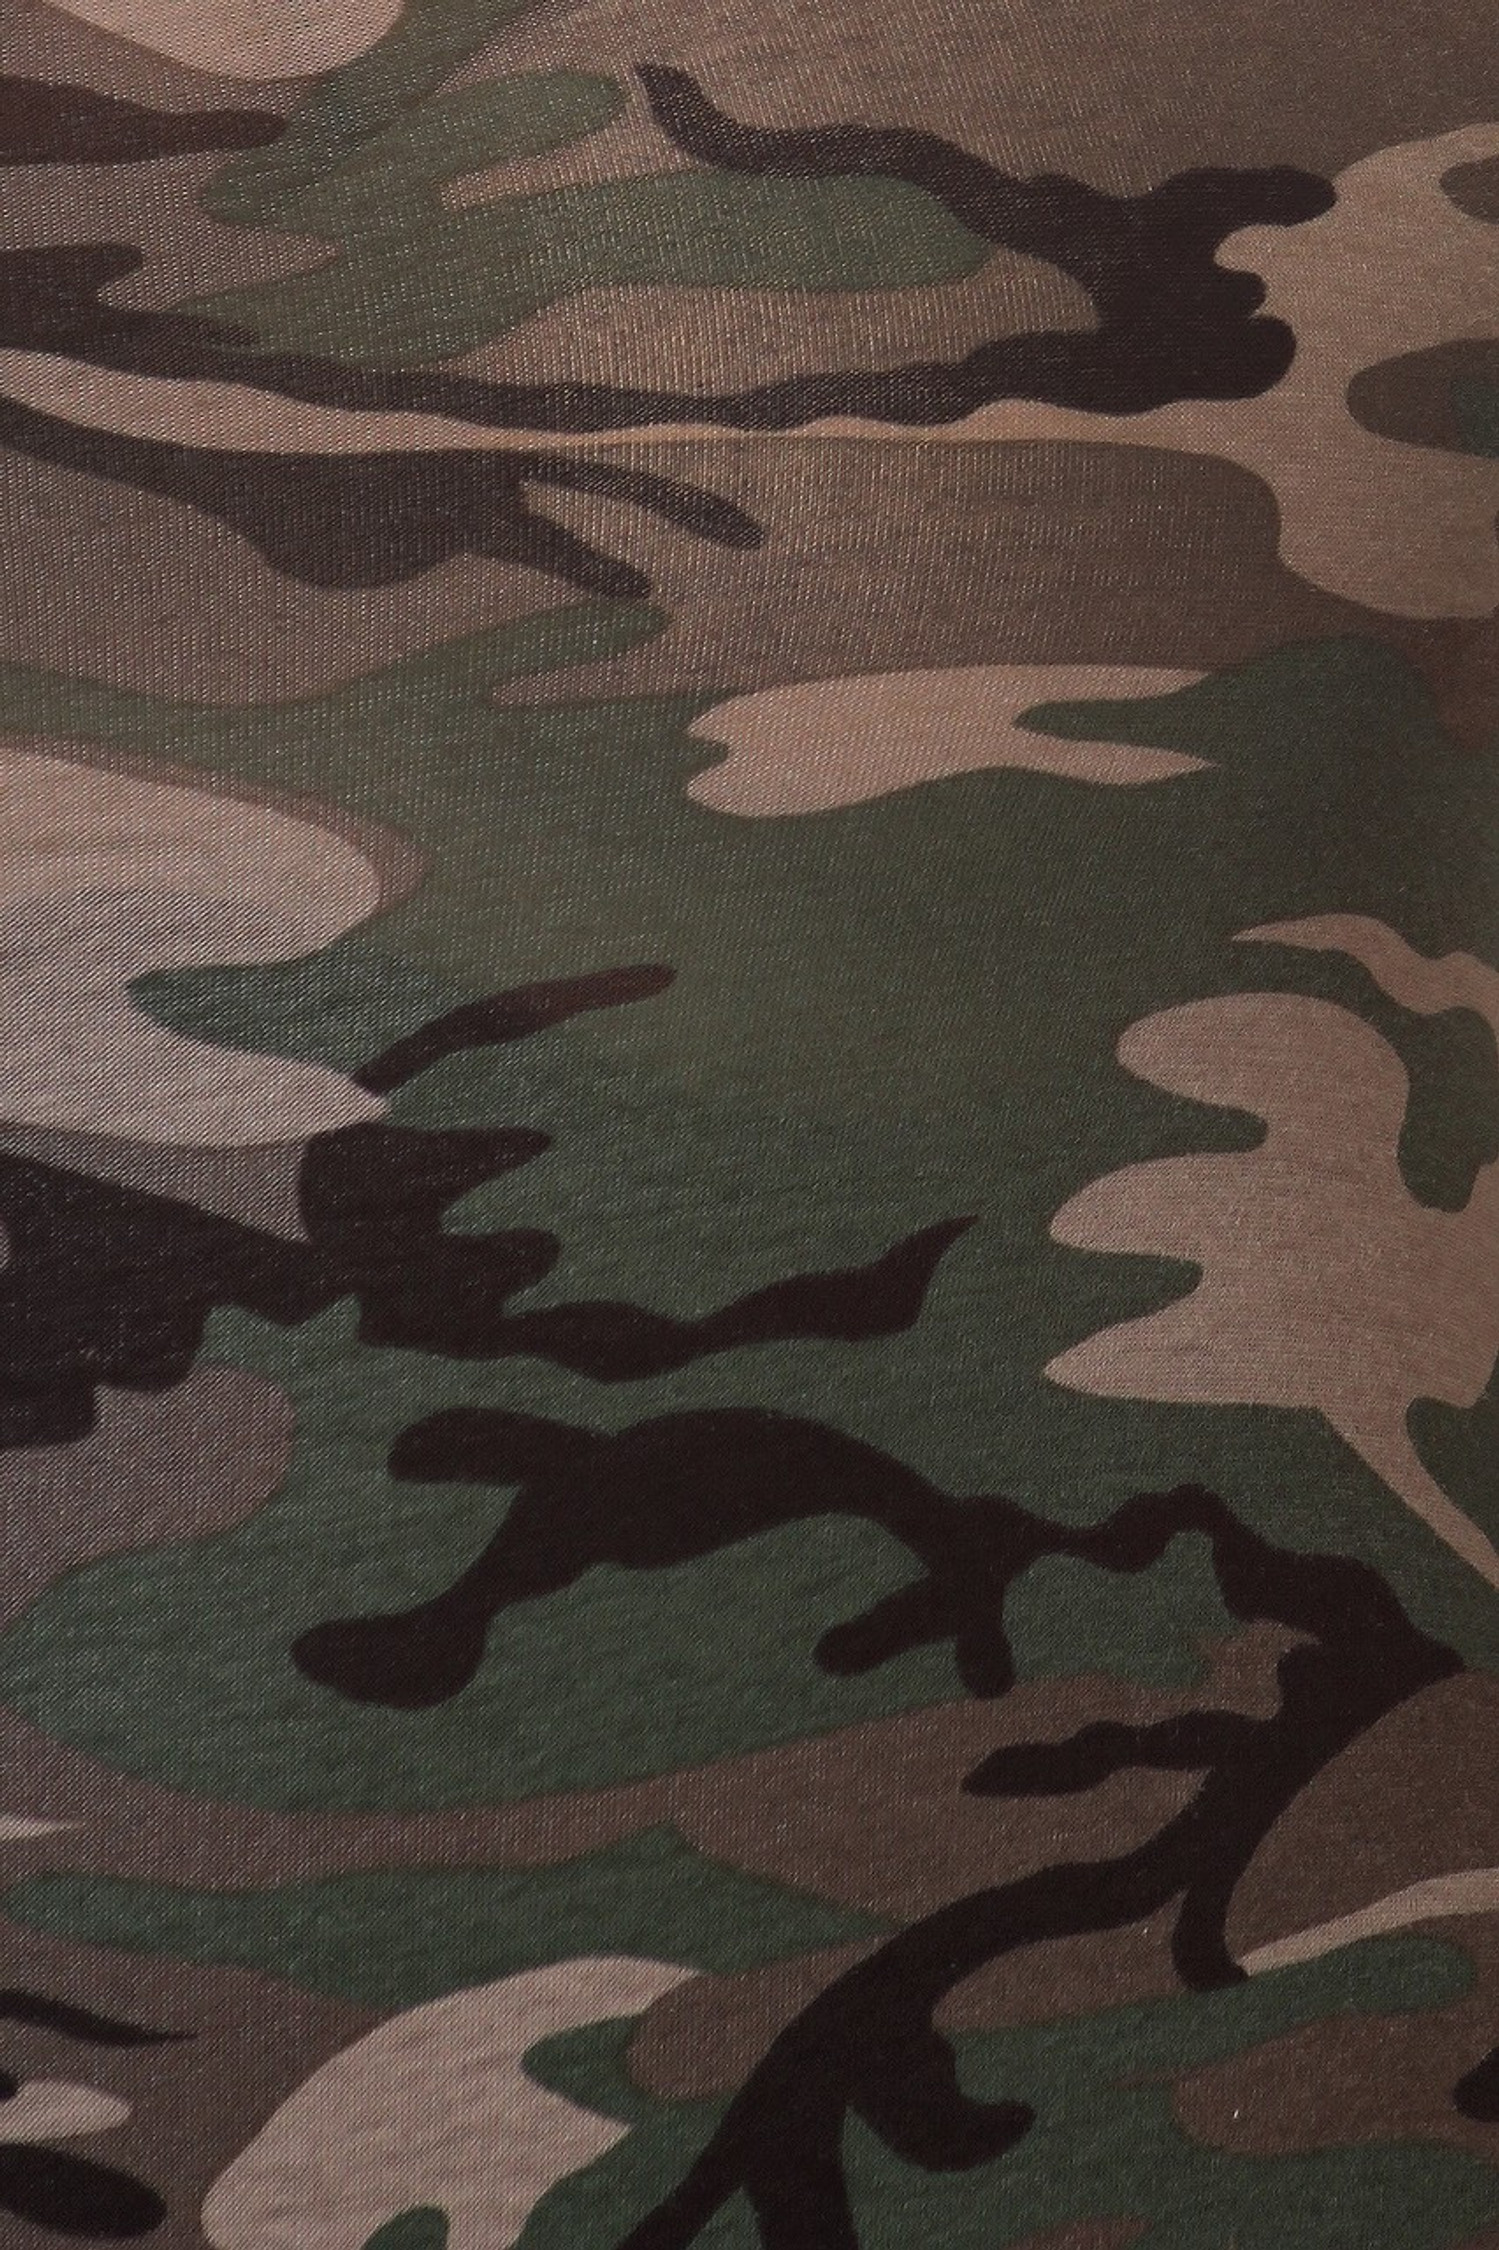 Close-up image of our plus size Camouflage Full Jumpsuit detailing the authentic camouflage print